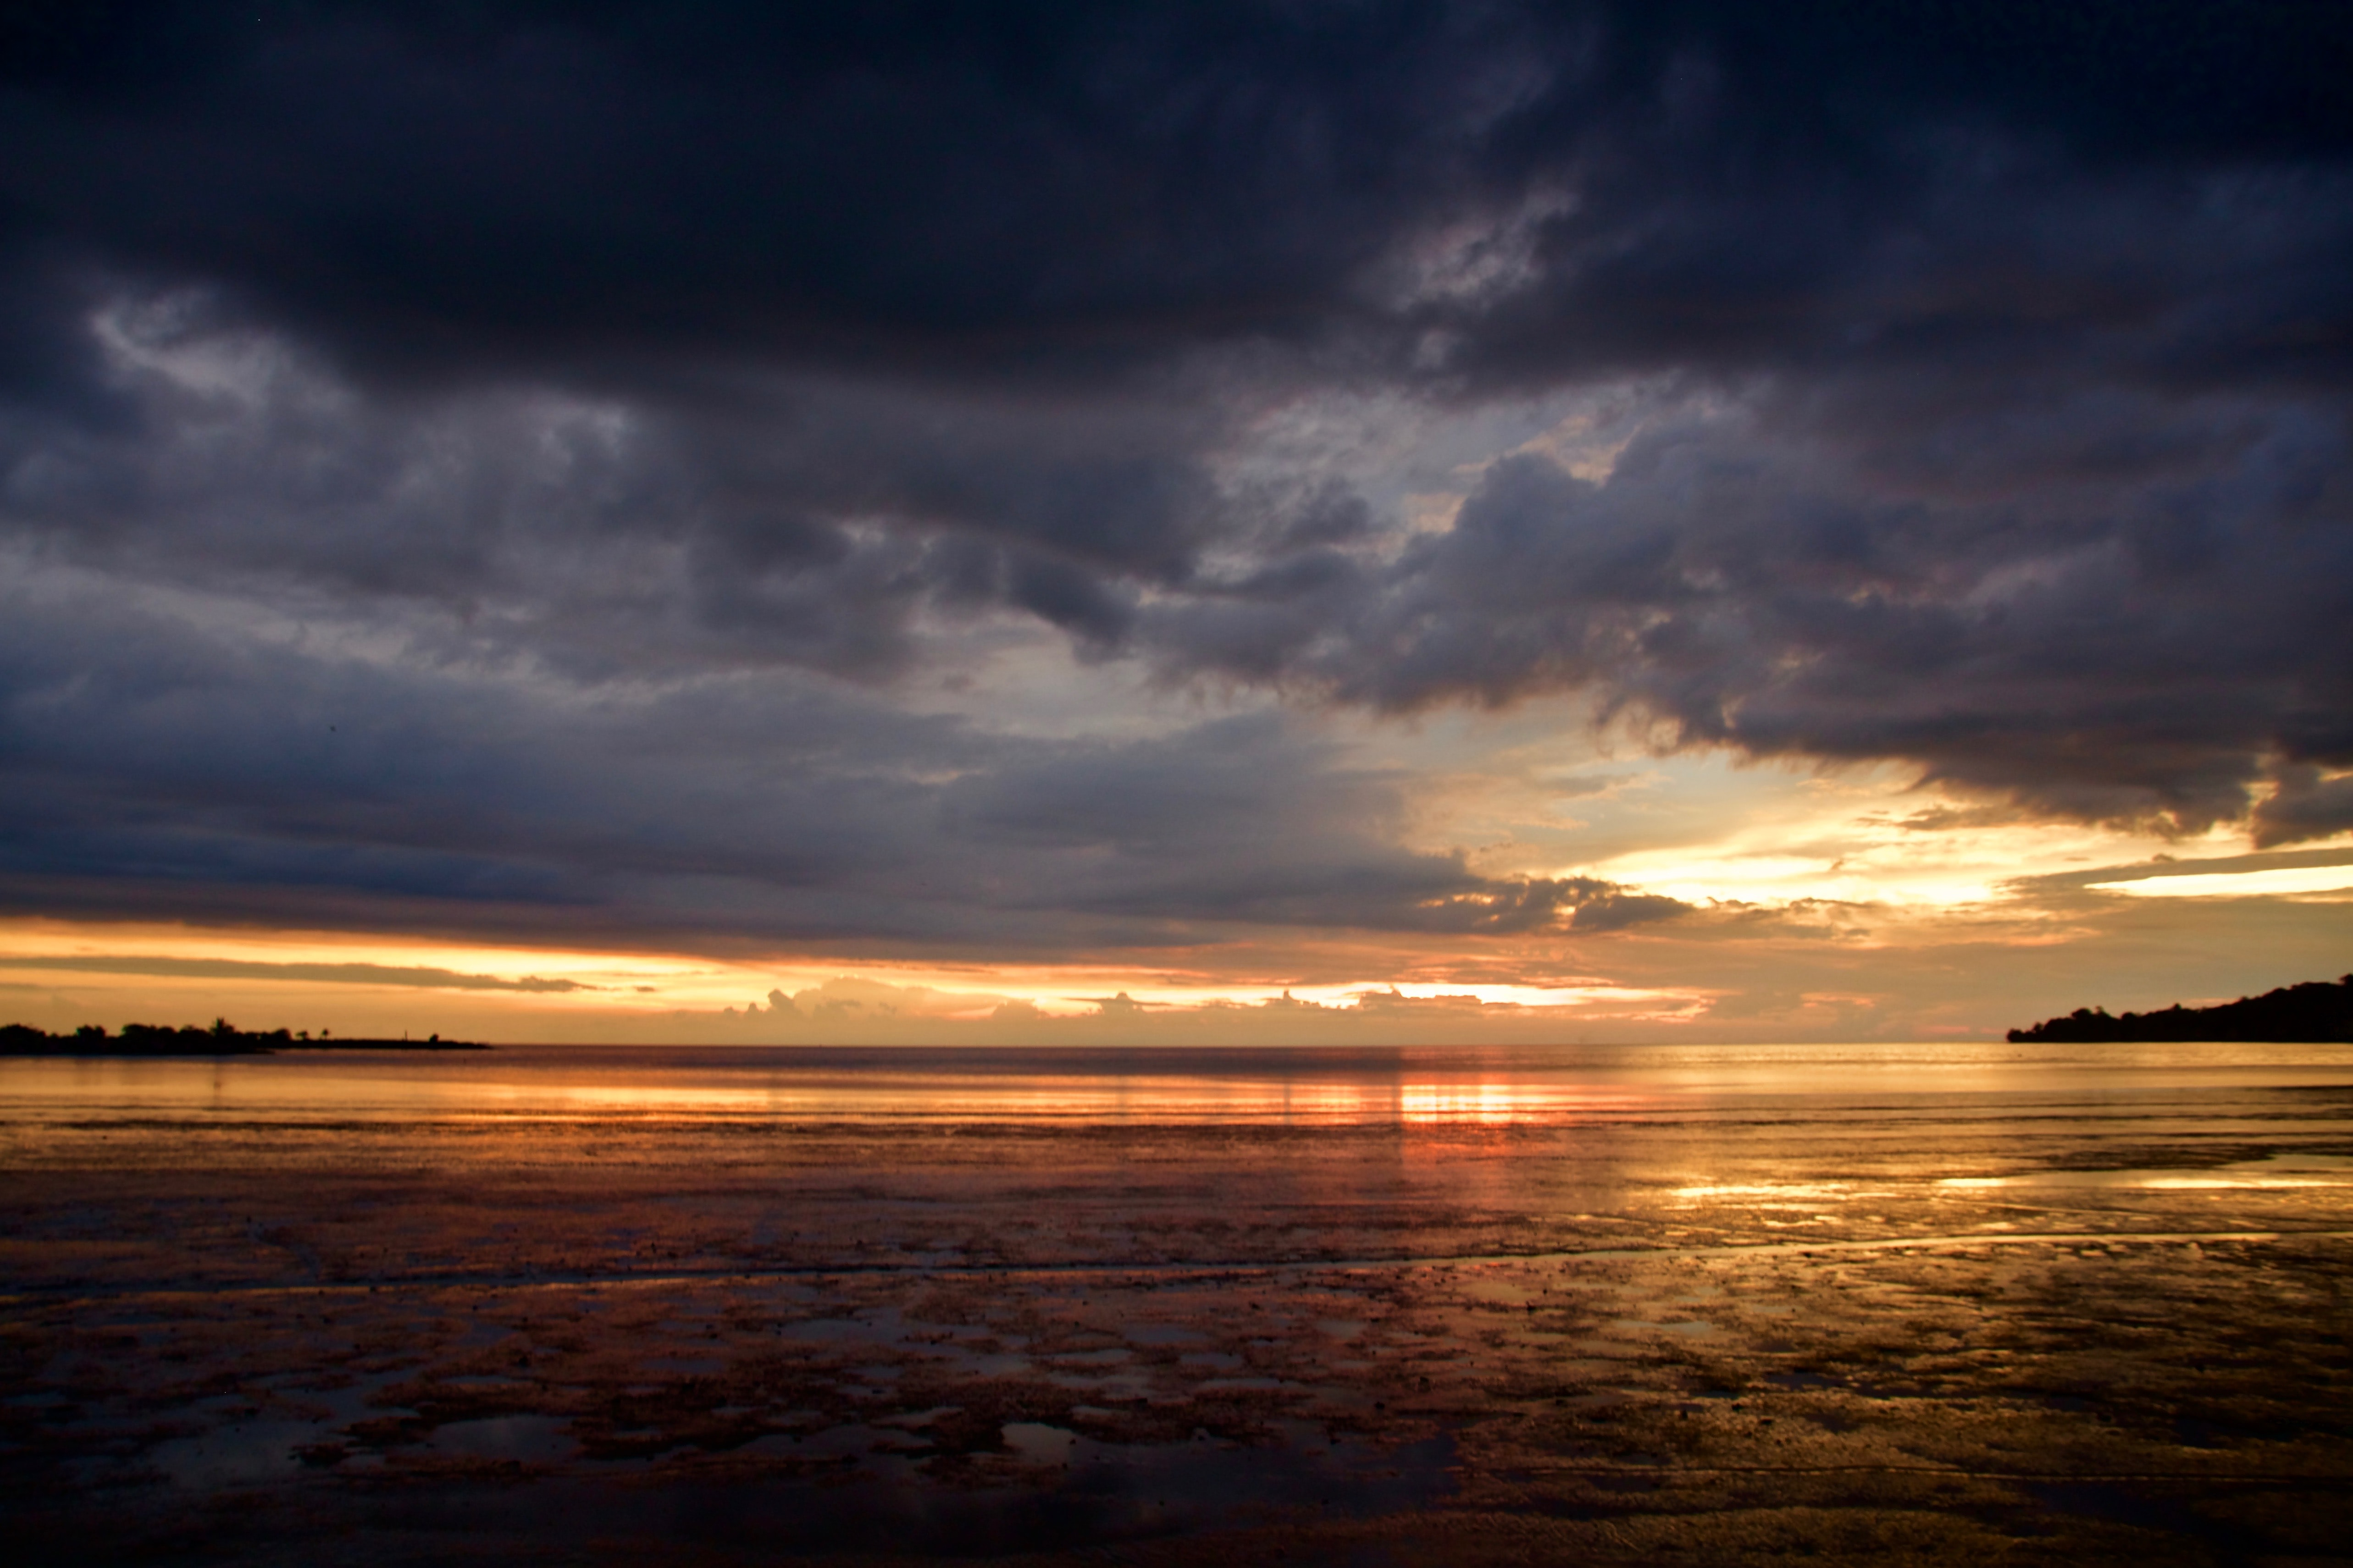 calm beach with brown sand under gray clouds during sunset